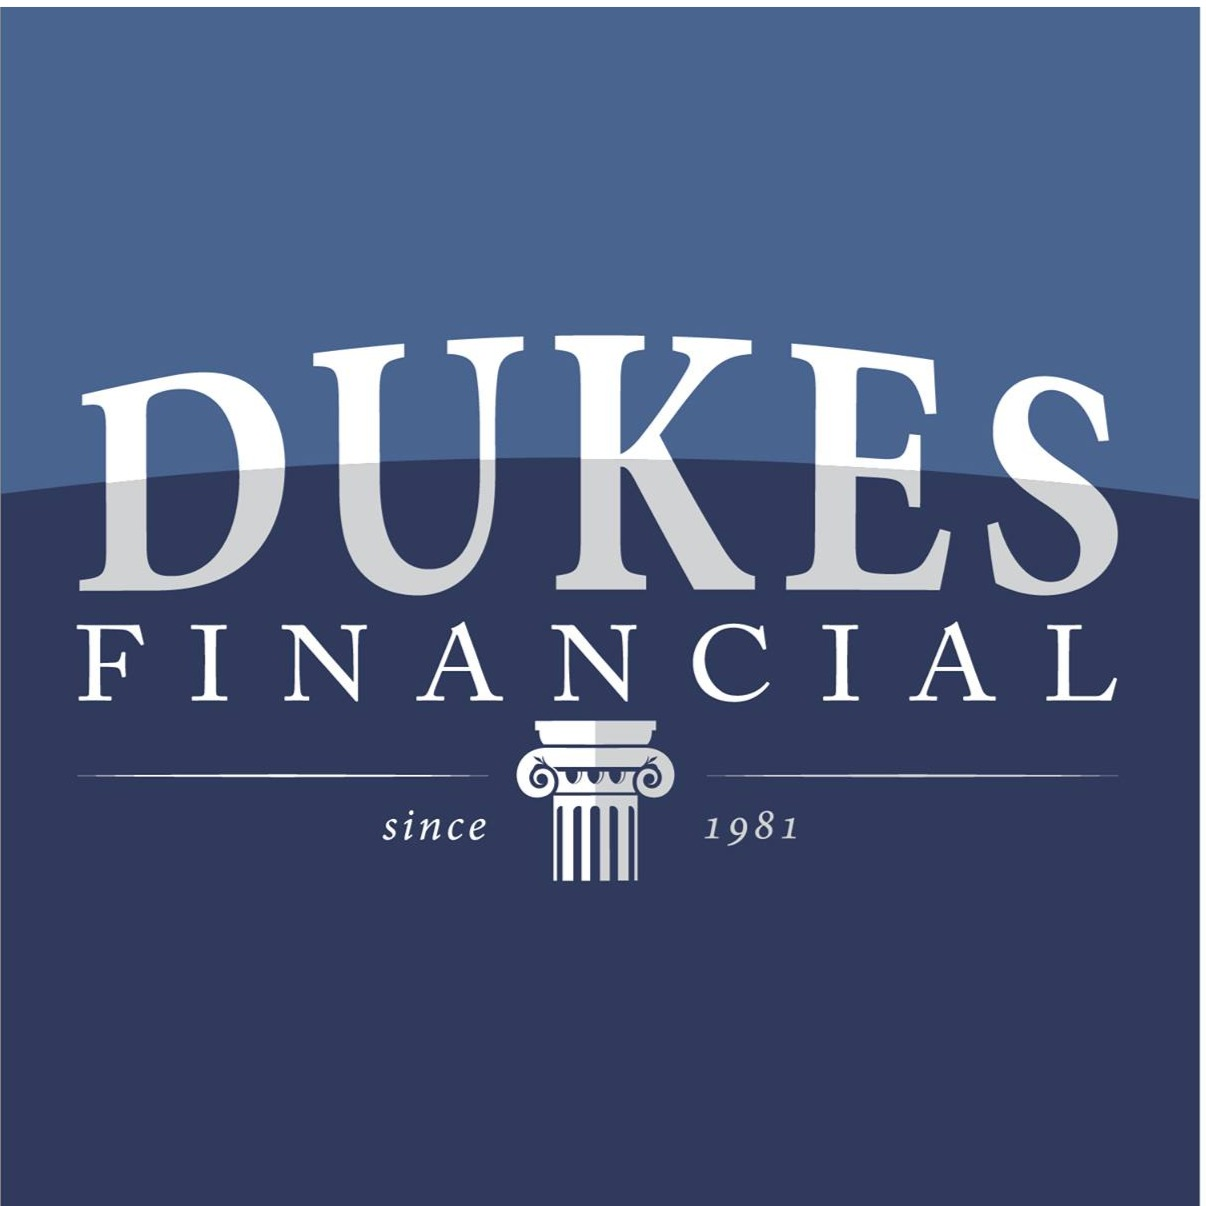 Dukes Financial LLC